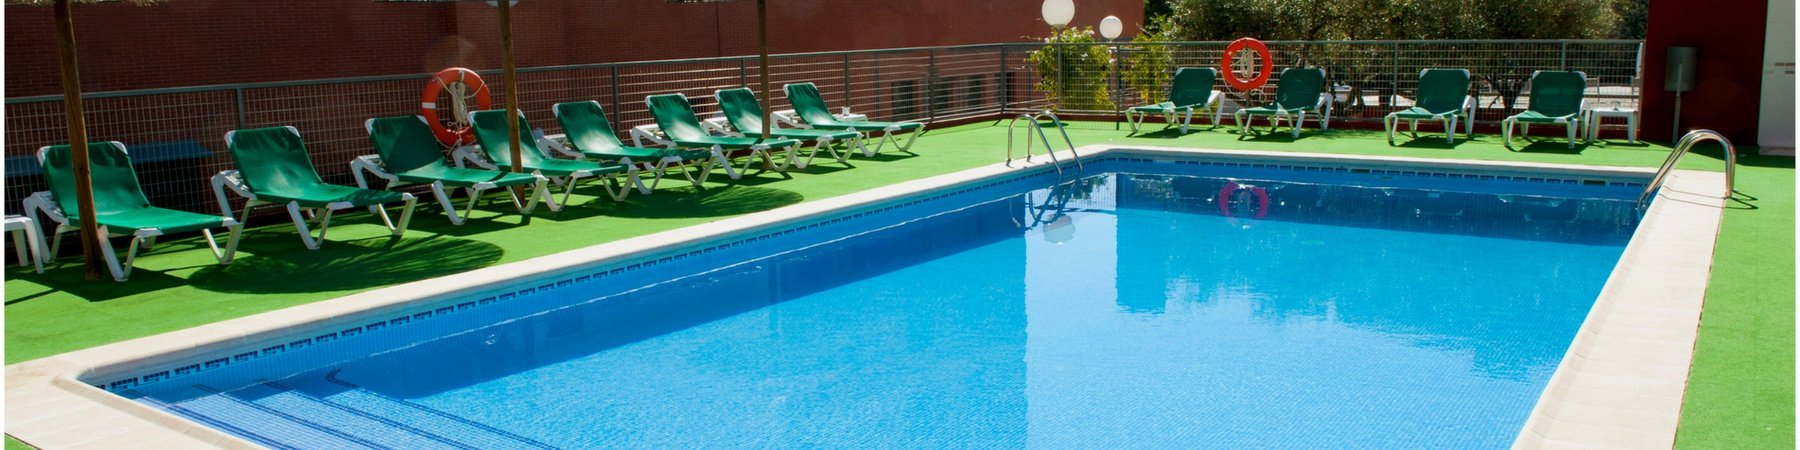 Services - Extremadura Hotel by Sercotel